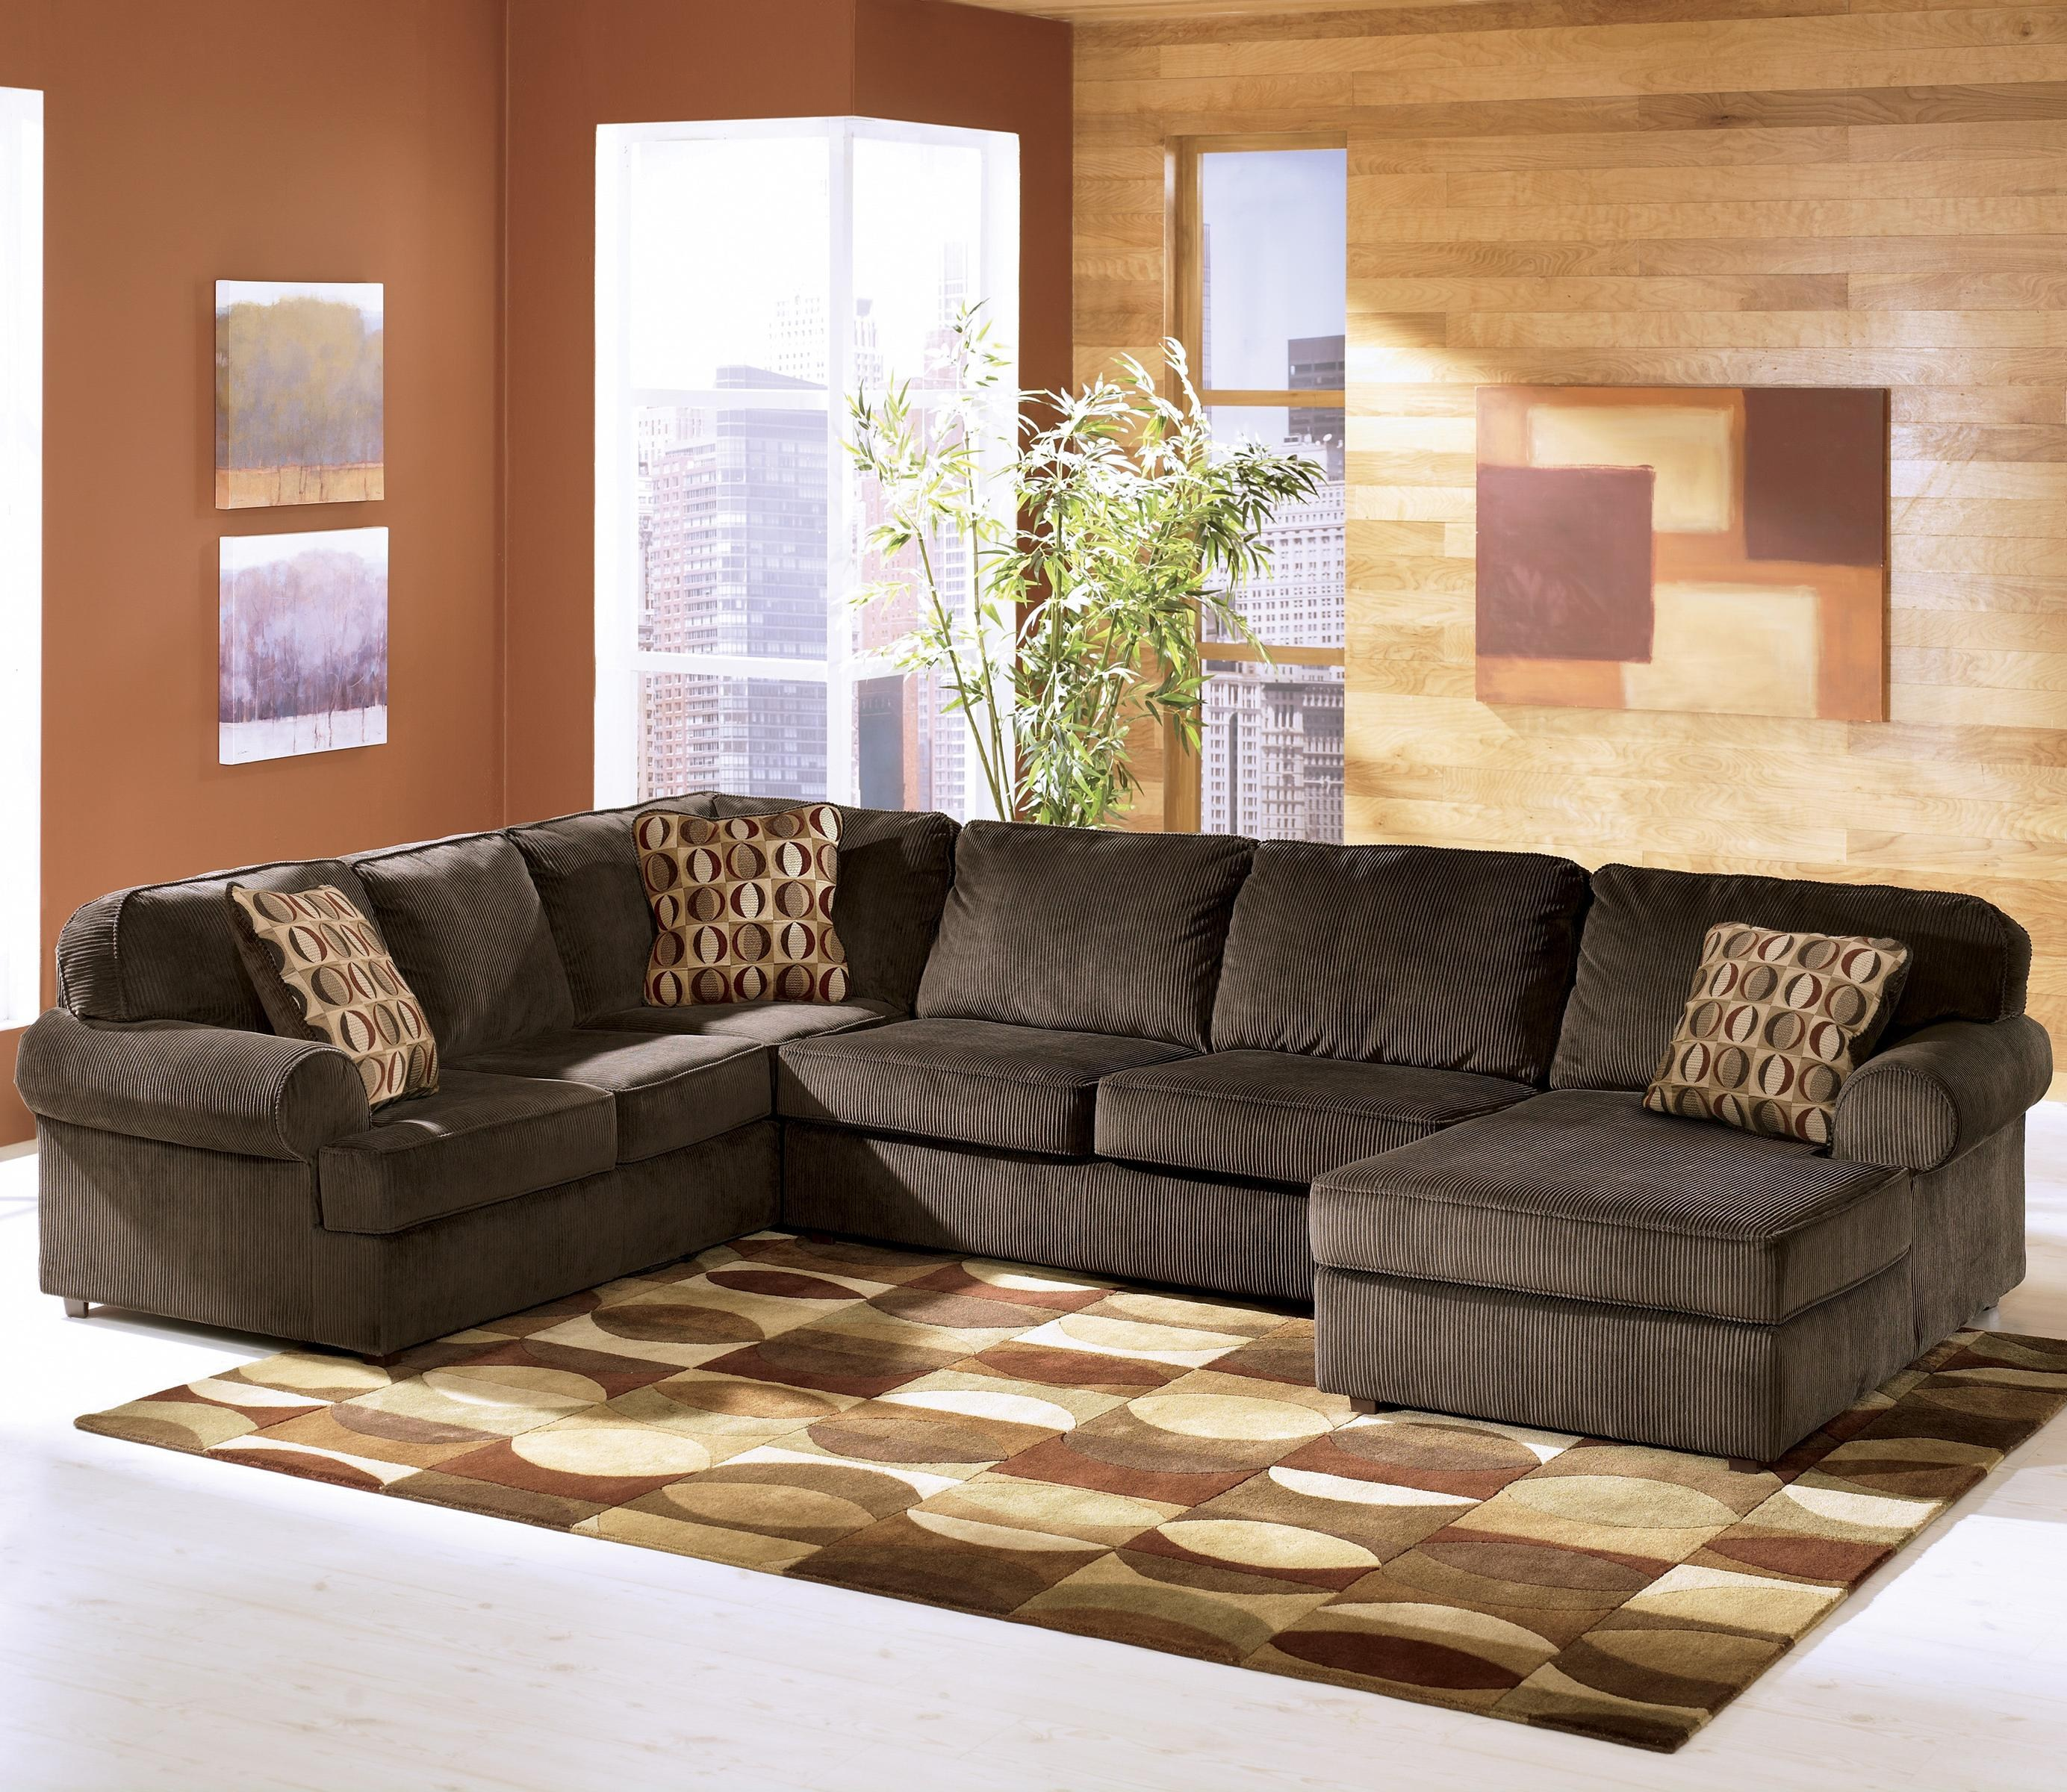 3 piece sectional sofa ashley furniture vista - chocolate casual 3-piece sectional with right  chaise RPUMWPR